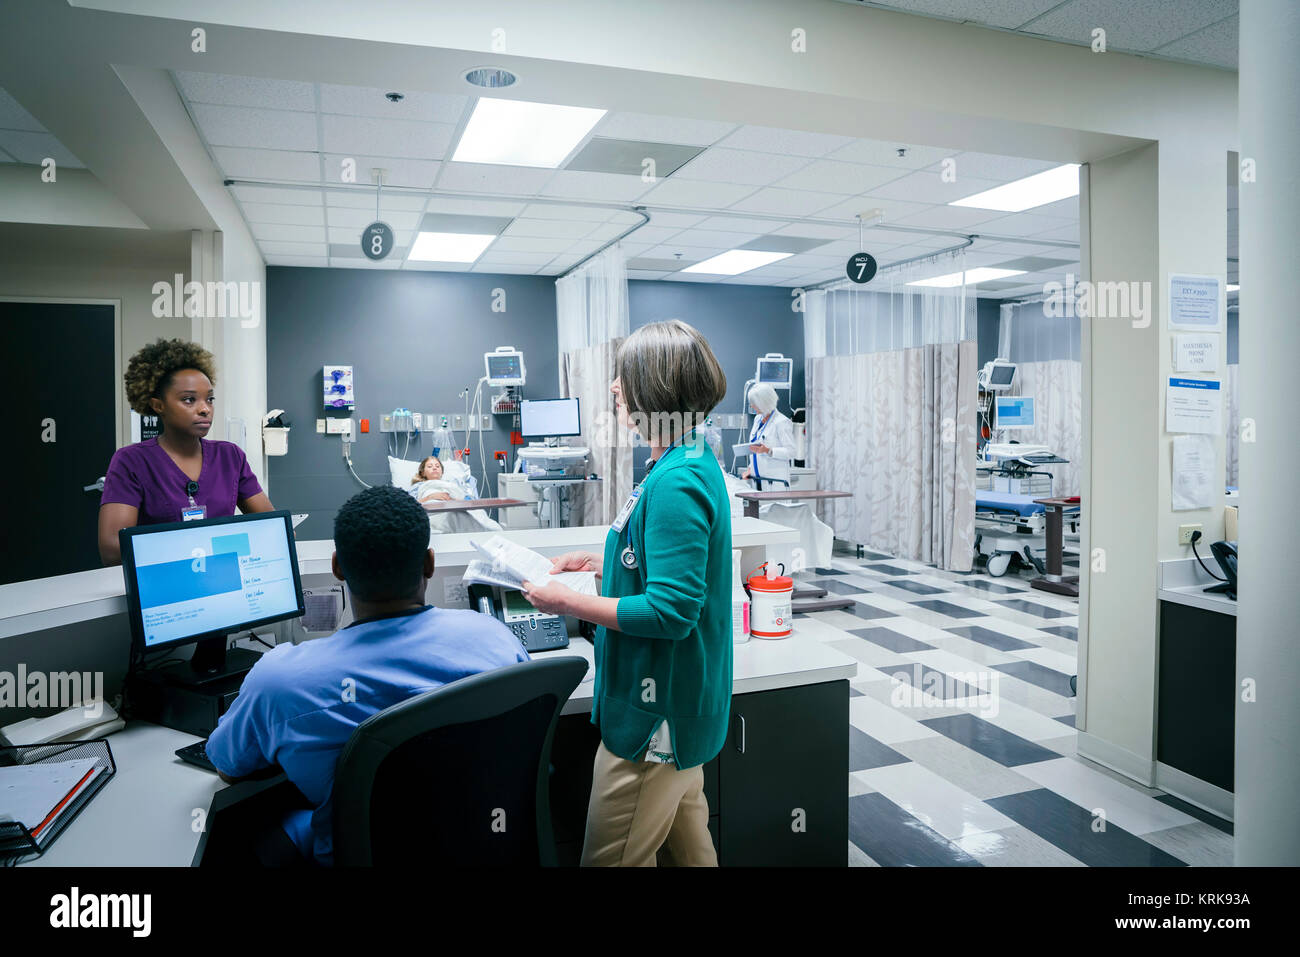 Doctor and nurses talking in hospital - Stock Image